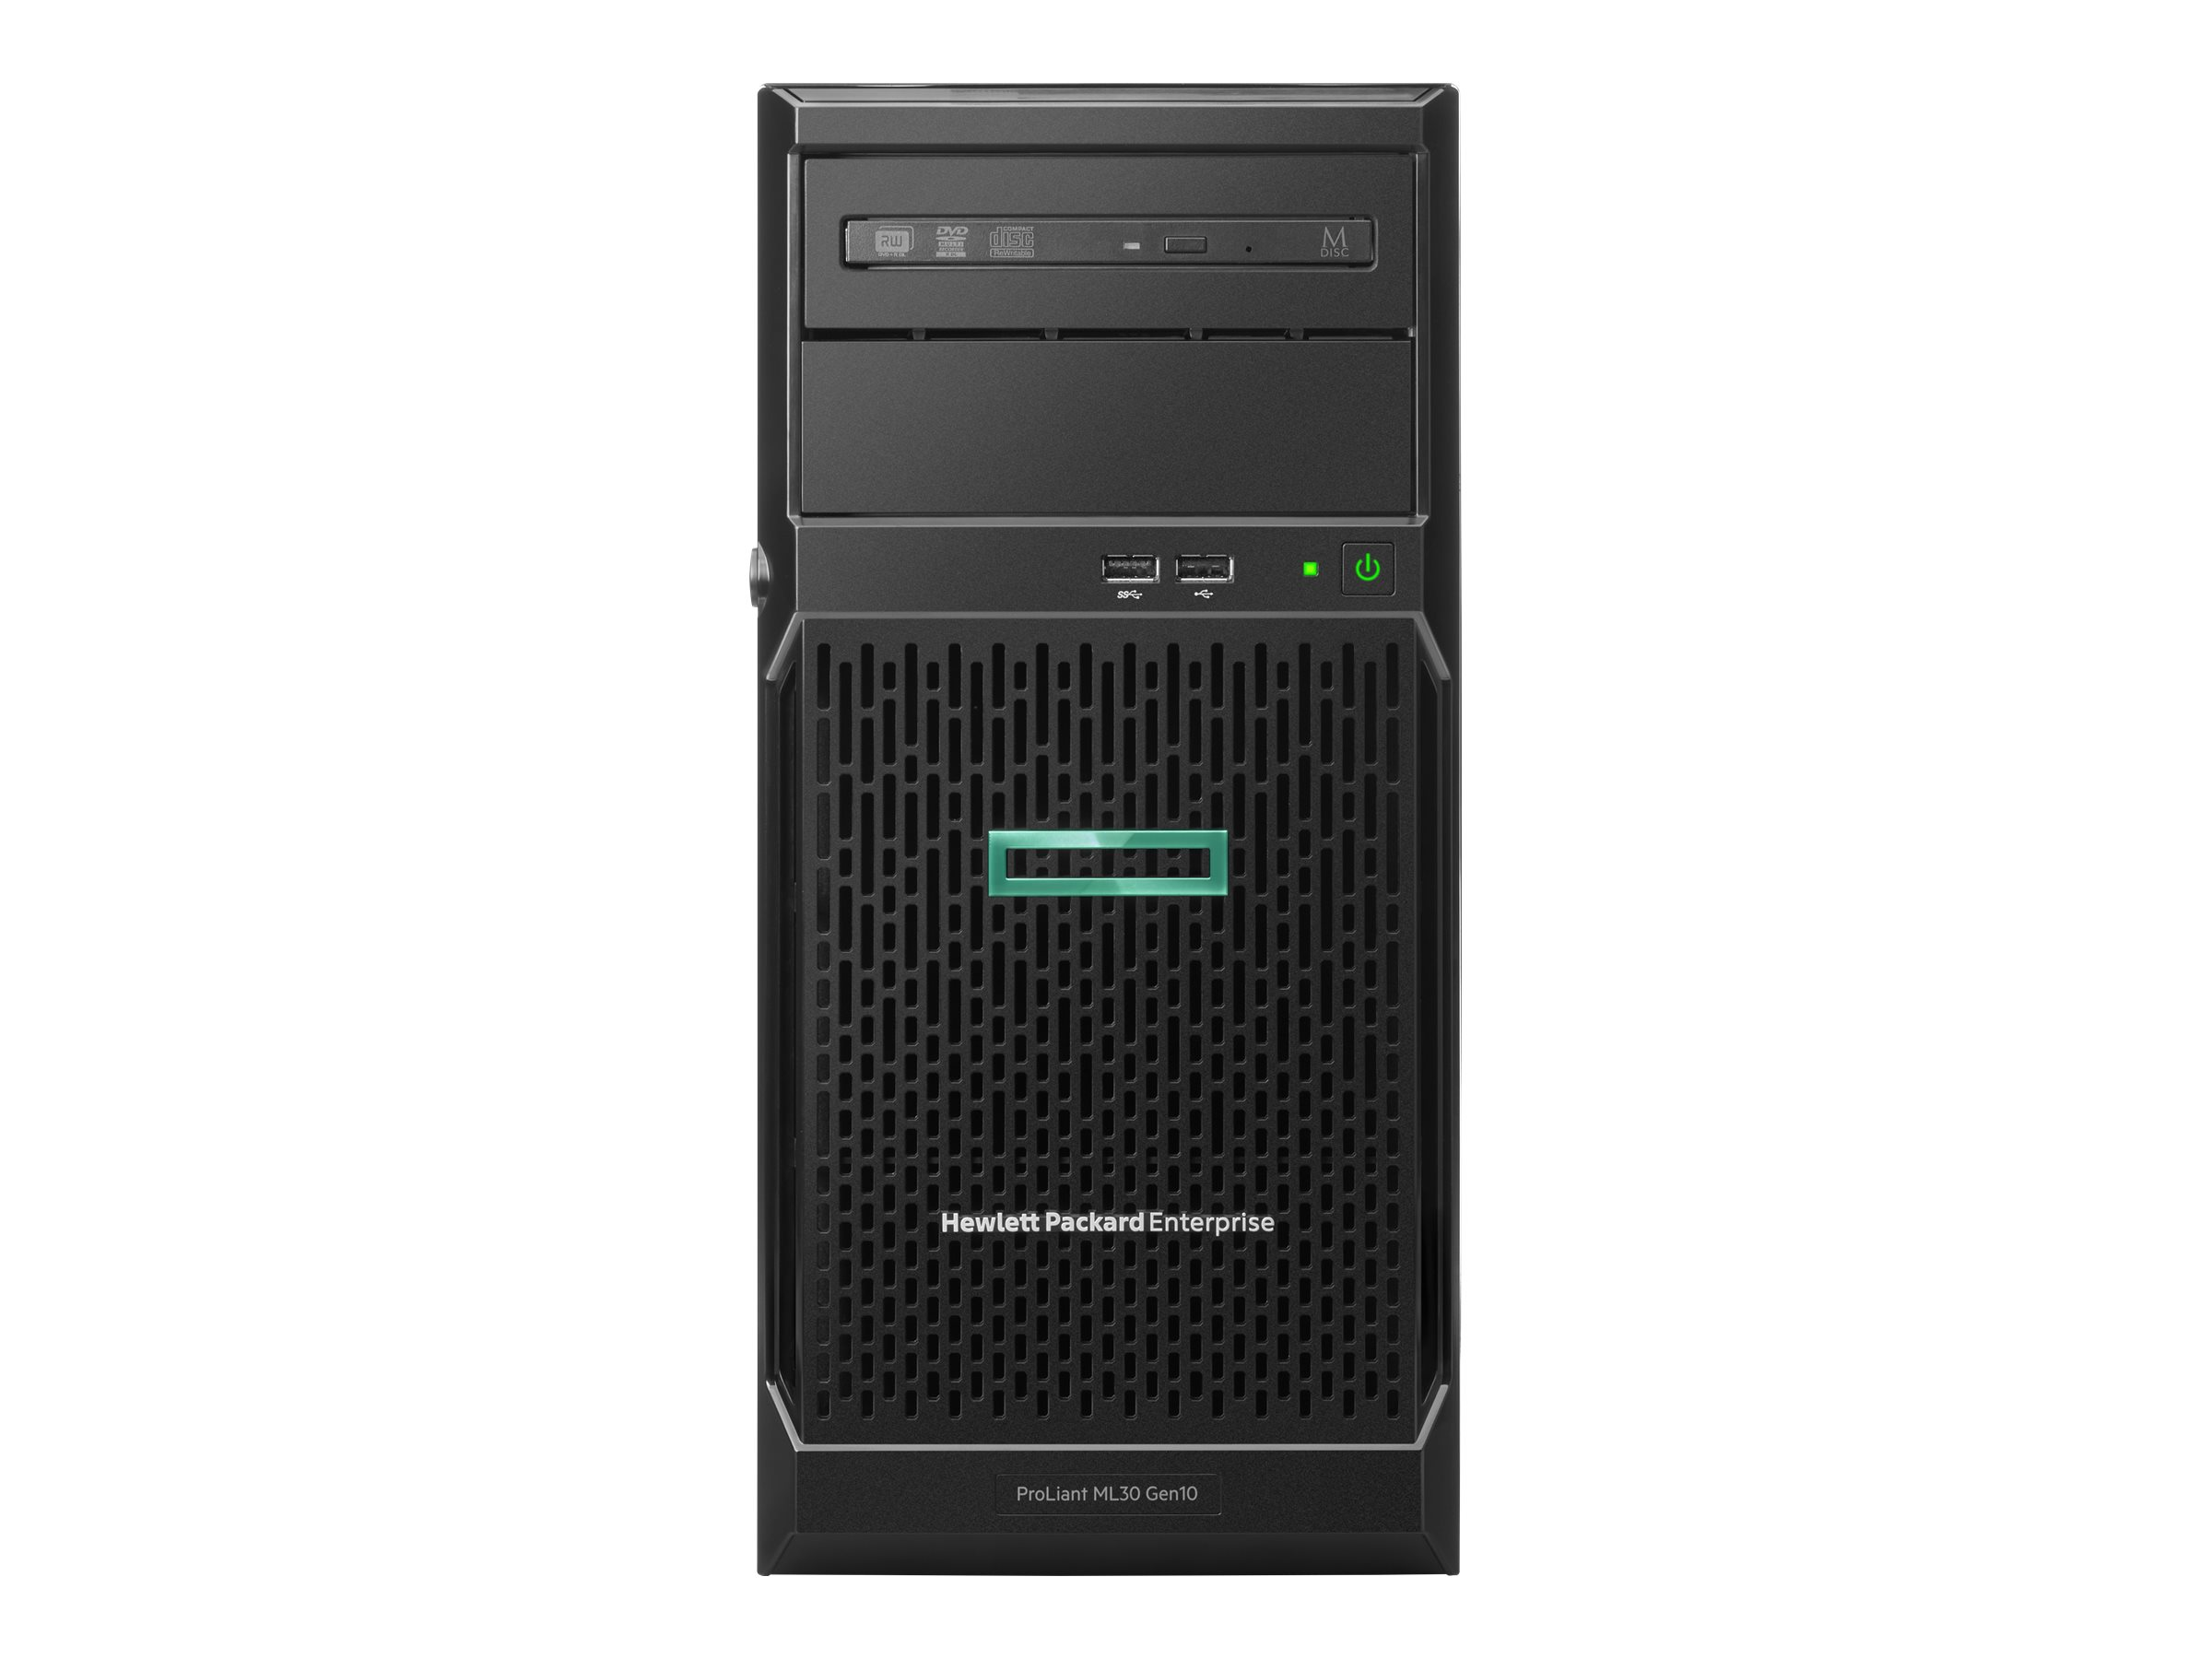 "HP Enterprise ProLiant ML30 Gen10 - Server - Tower - 4U - 1-Weg - 1 x Xeon E-2224 / 3.4 GHz - RAM 16 GB - SATA - Hot-Swap 6.4 cm (2.5"")"